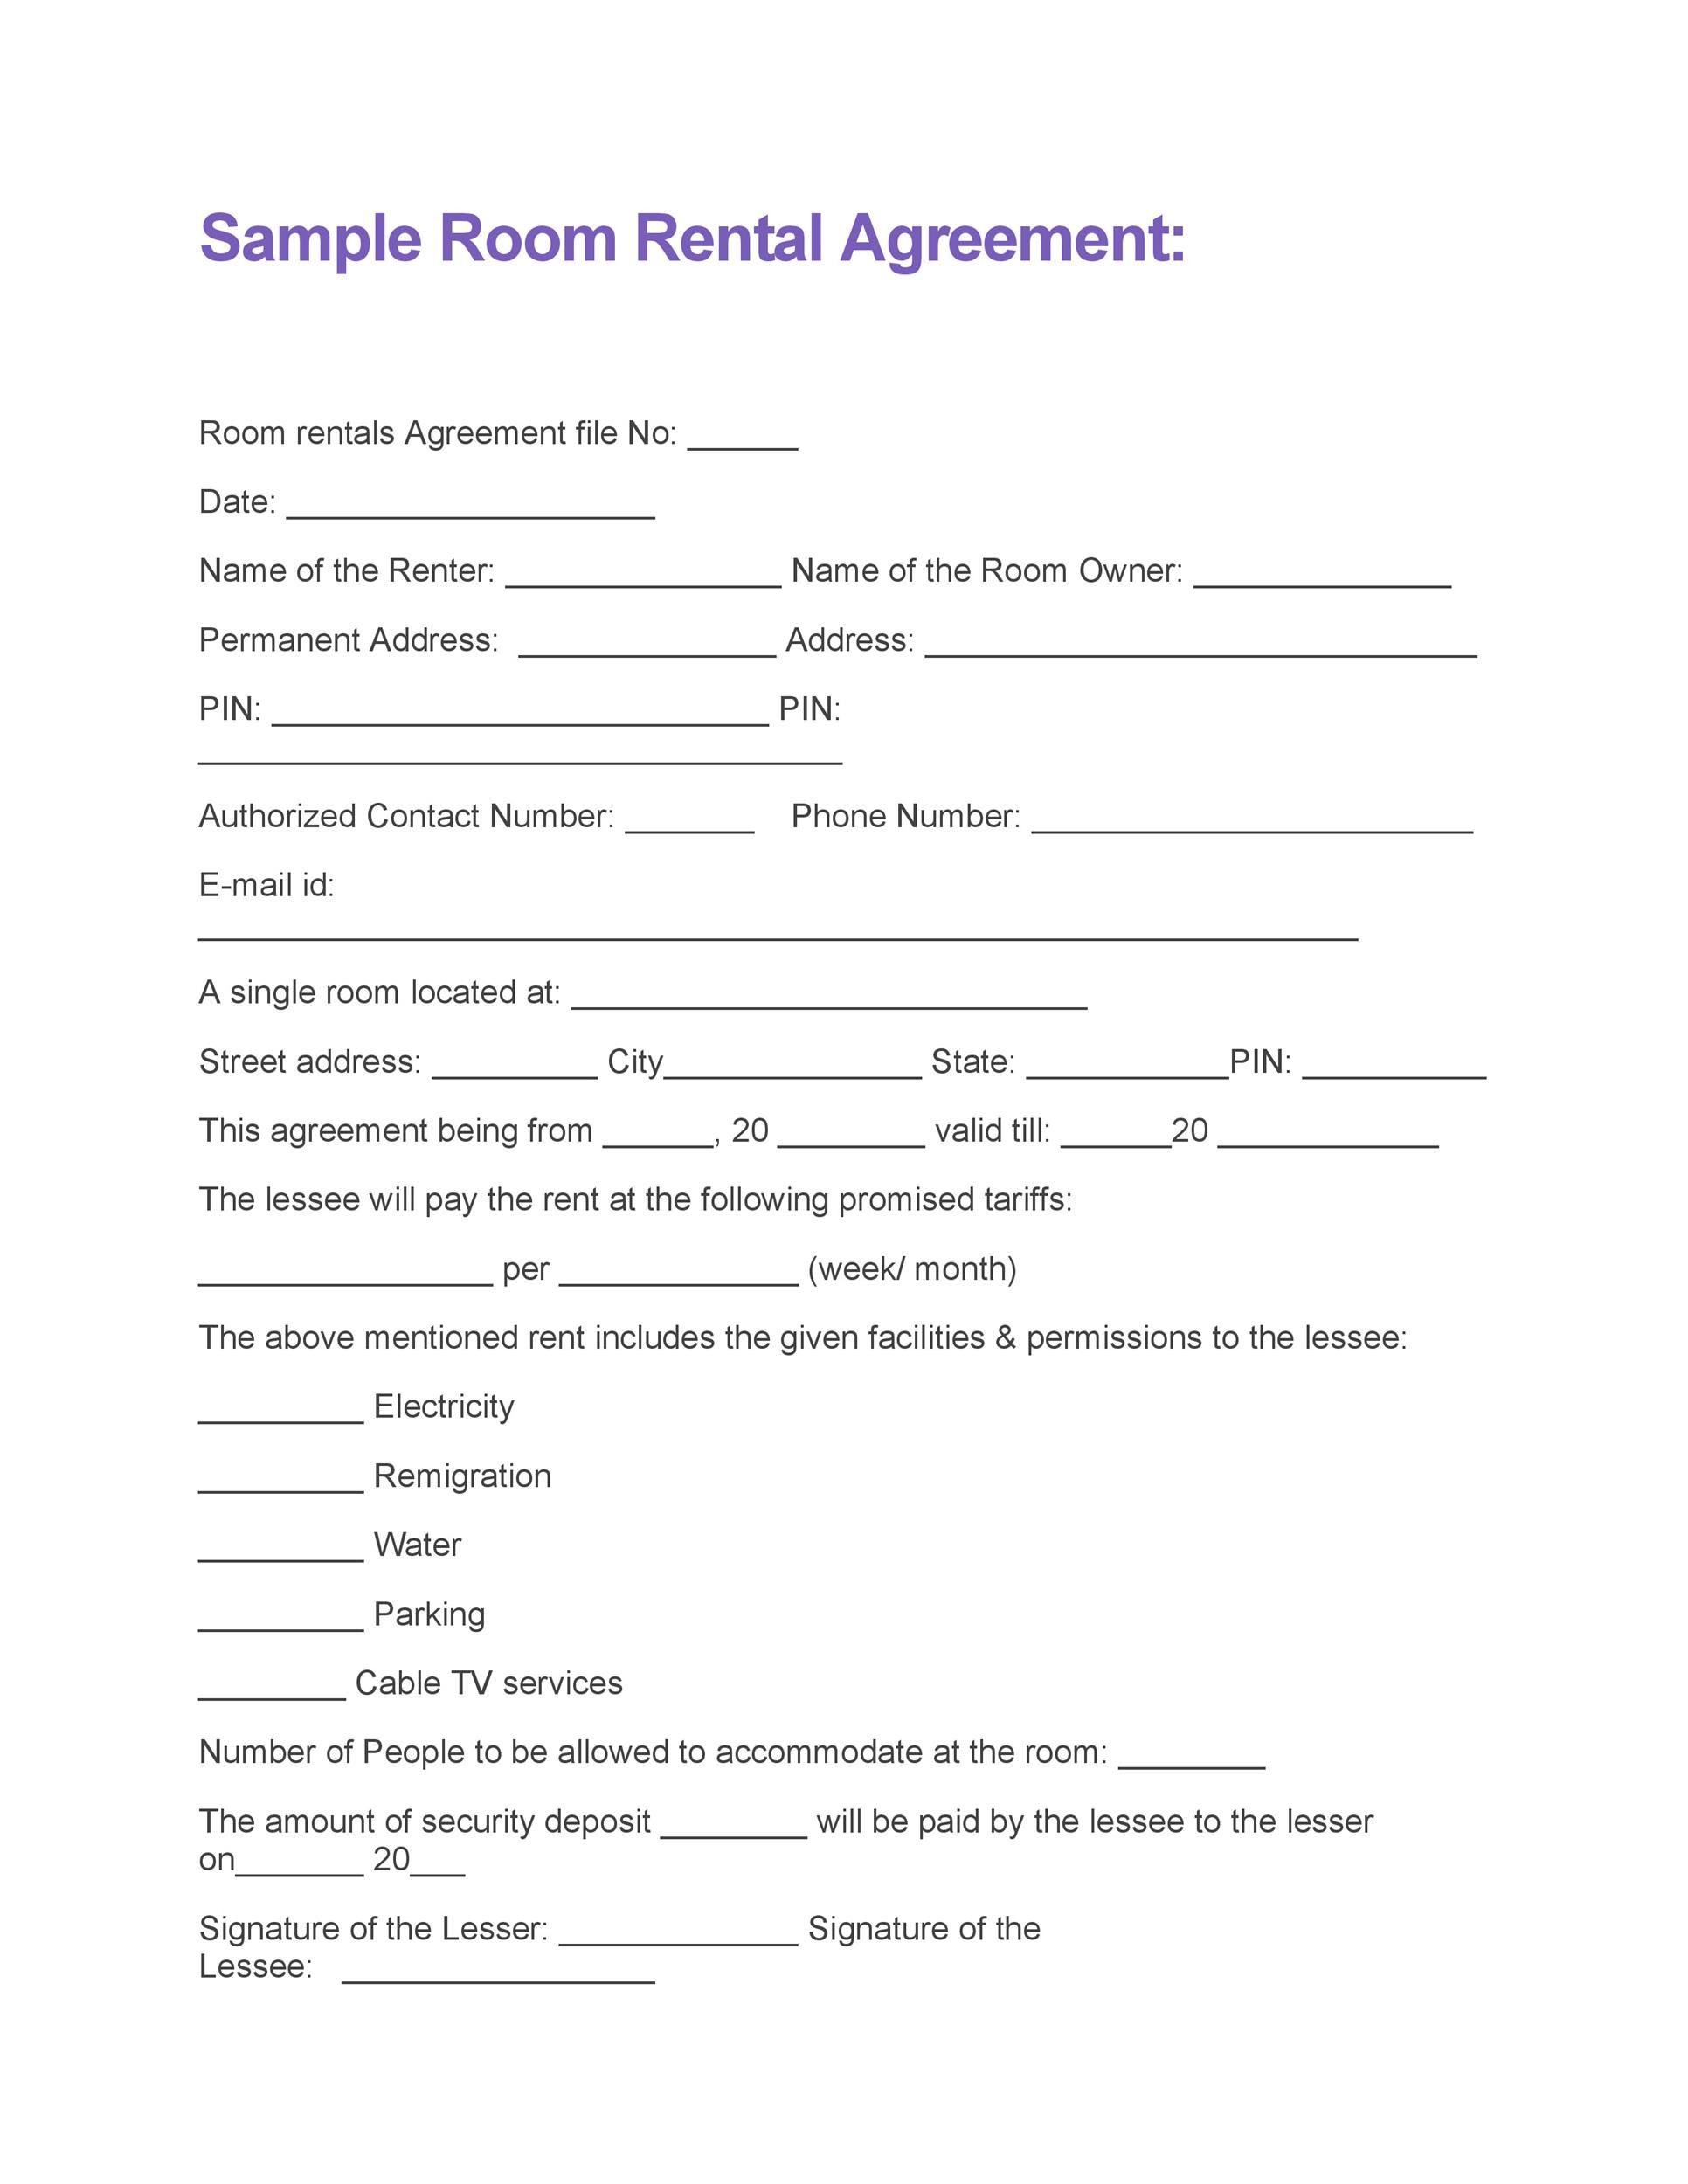 Rental Application Template 42. 42 Rental Application Forms   Lease Agreement Templates